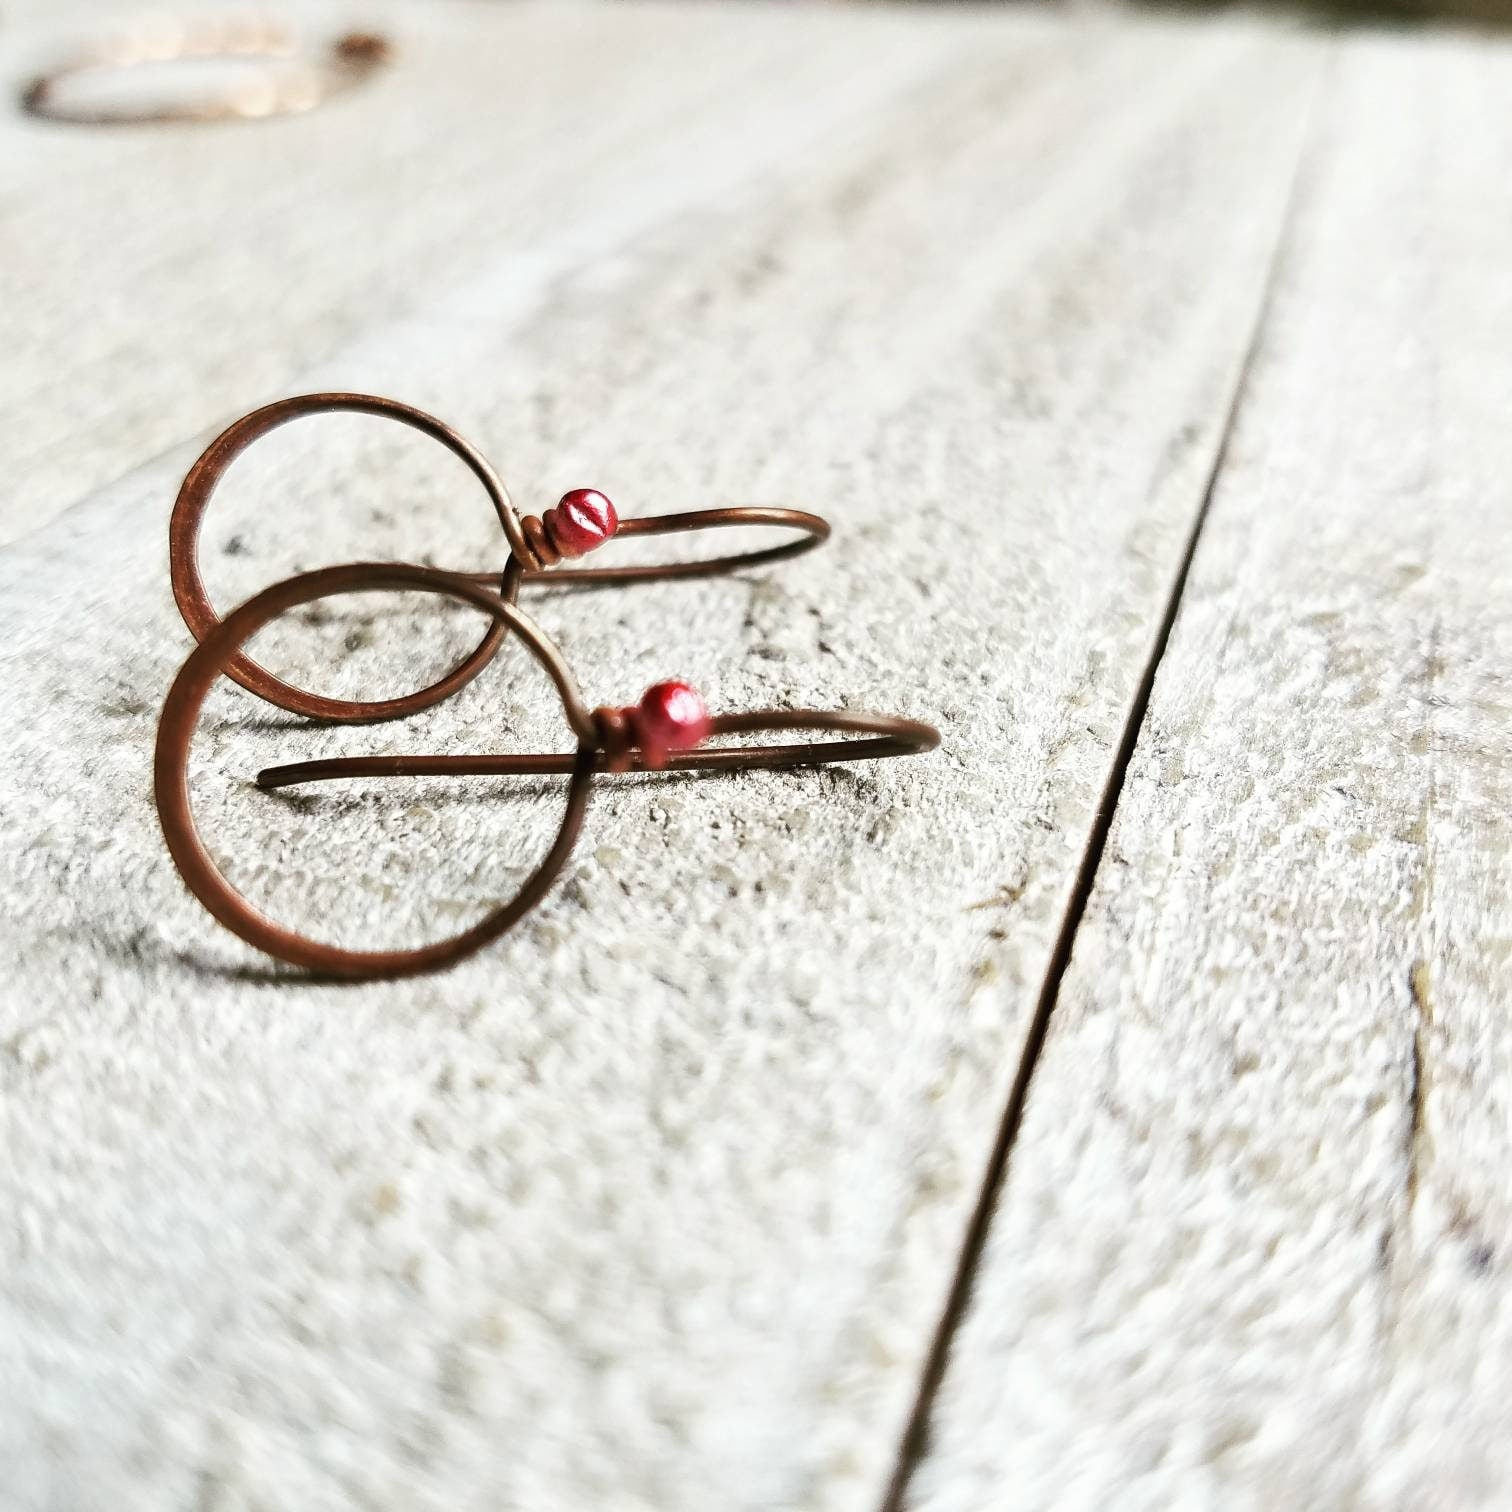 2 Pair  21ga Handmade Antique Antiqued Copper Signature Cherry Red Earring  Findings Open Loops